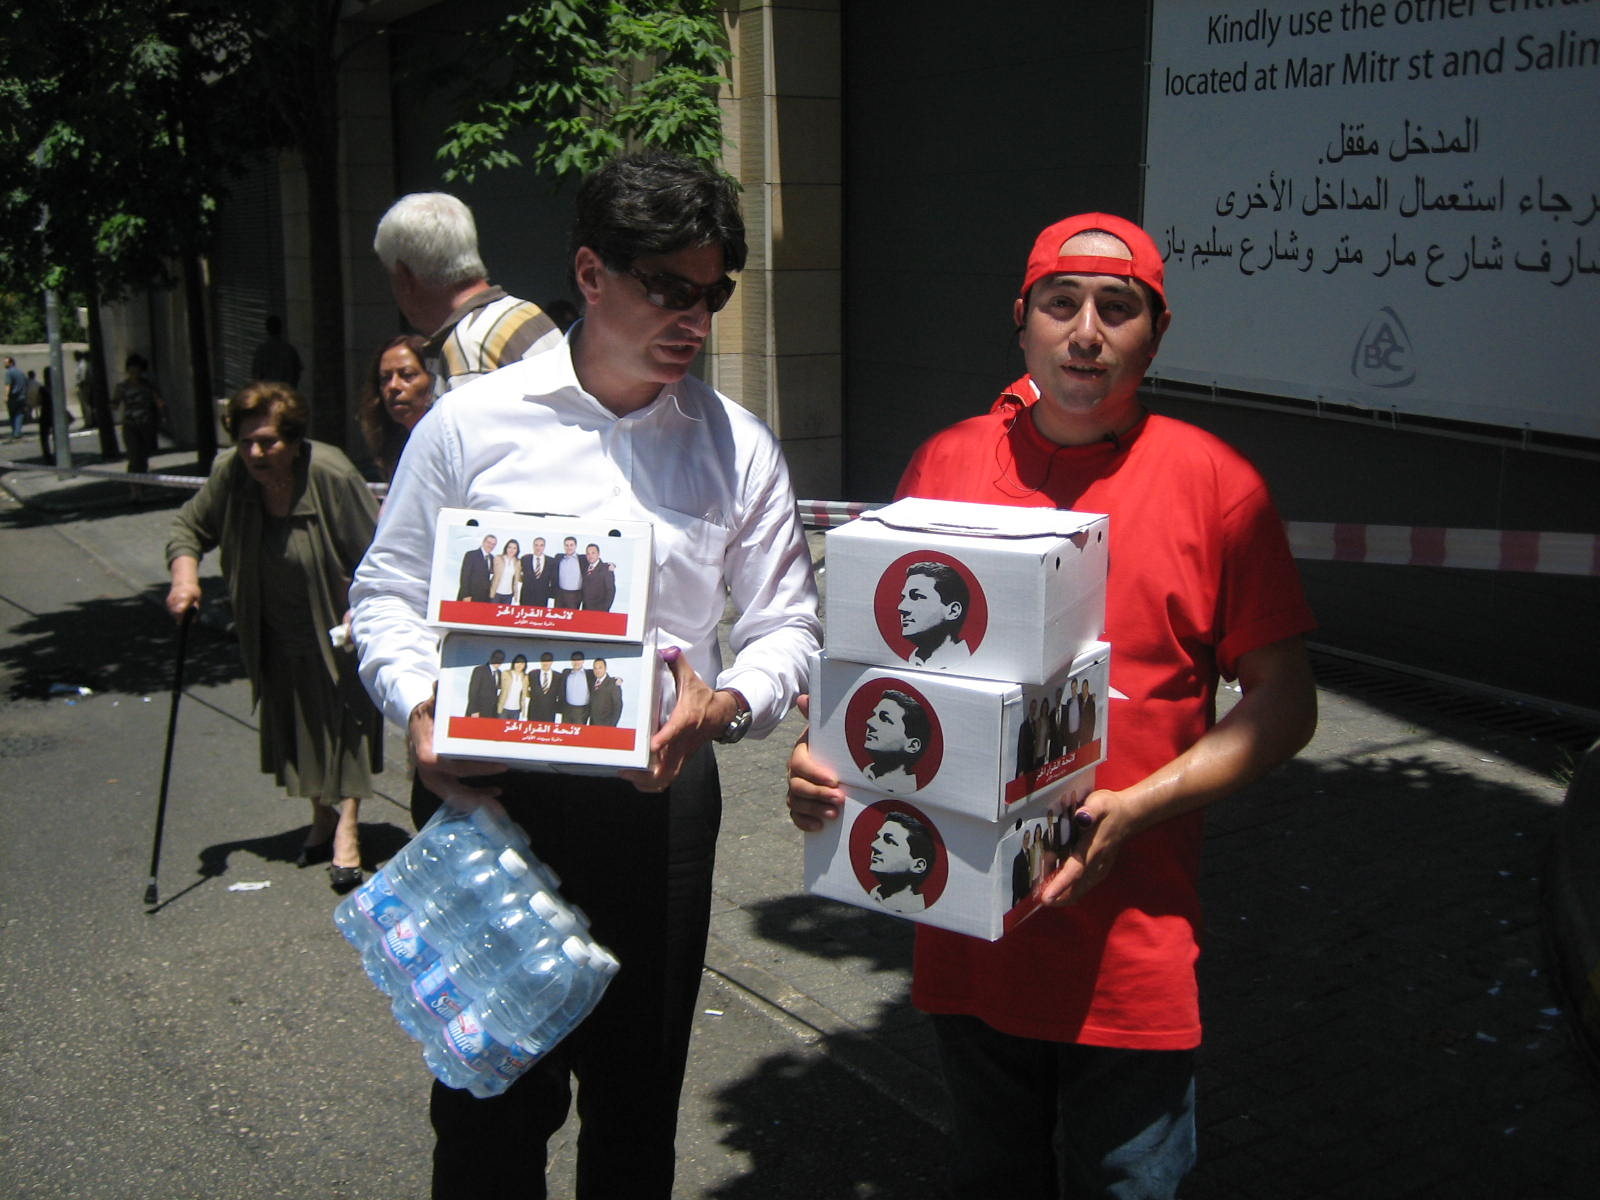 stationMarch 14 supporters hand out lunchboxes bearing the images of the coalition's candidates, notably an image of Nadim Gemayel highly reminiscent of civil war images of his assassinated father.